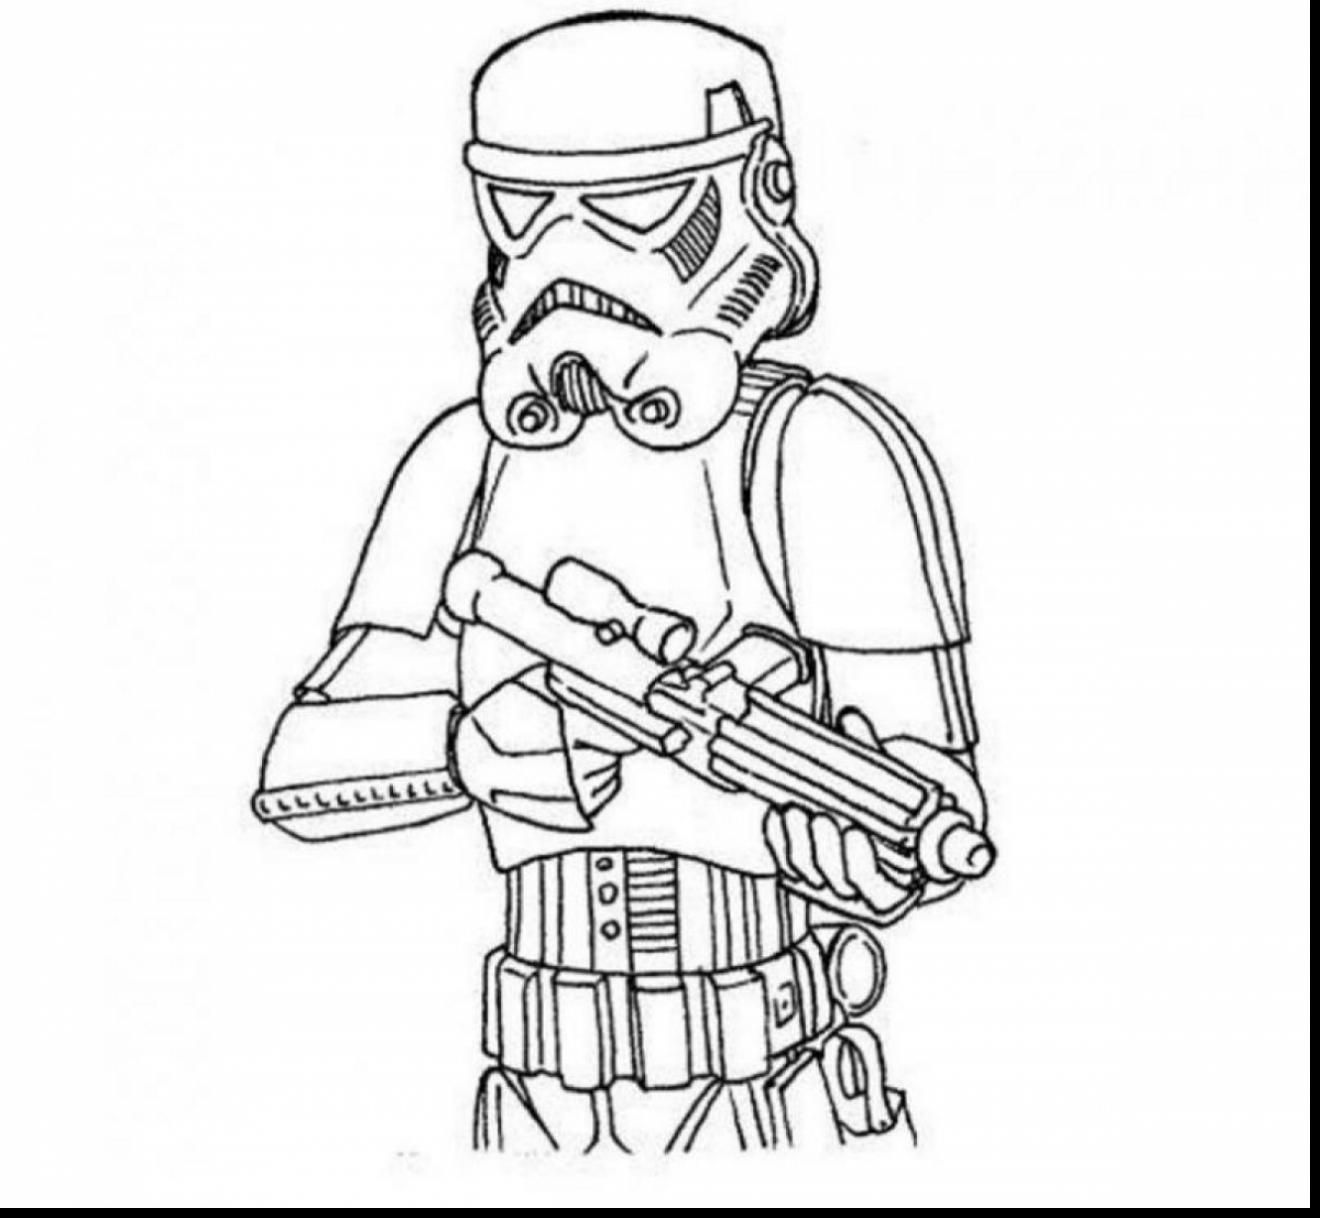 Star Wars Coloring Pages Ideas For Kids Star wars kids